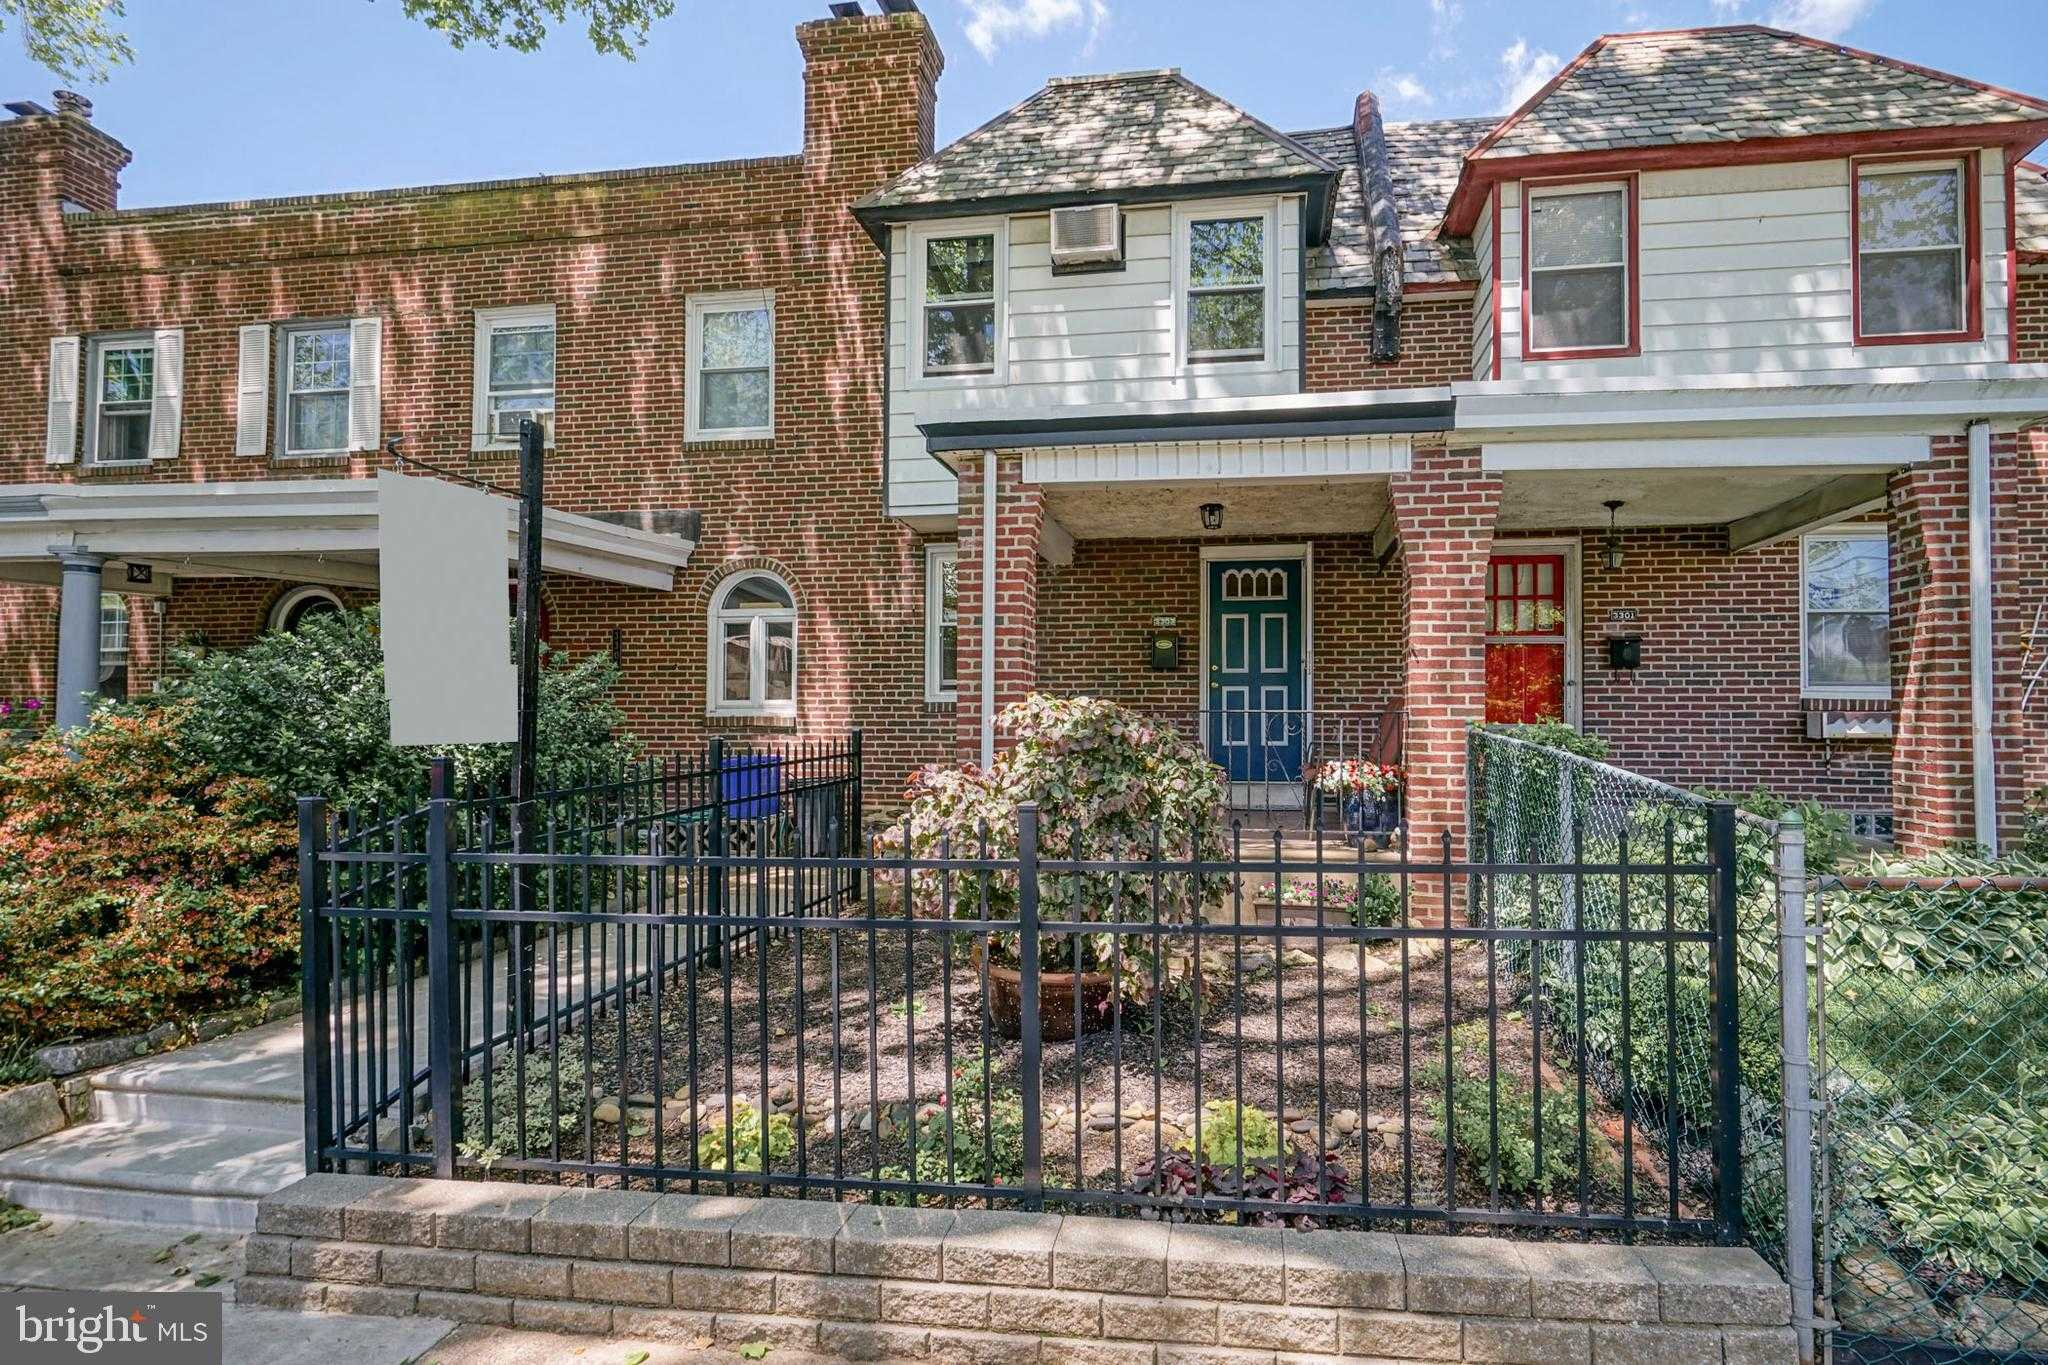 $257,500 - 3Br/2Ba -  for Sale in East Falls, Philadelphia